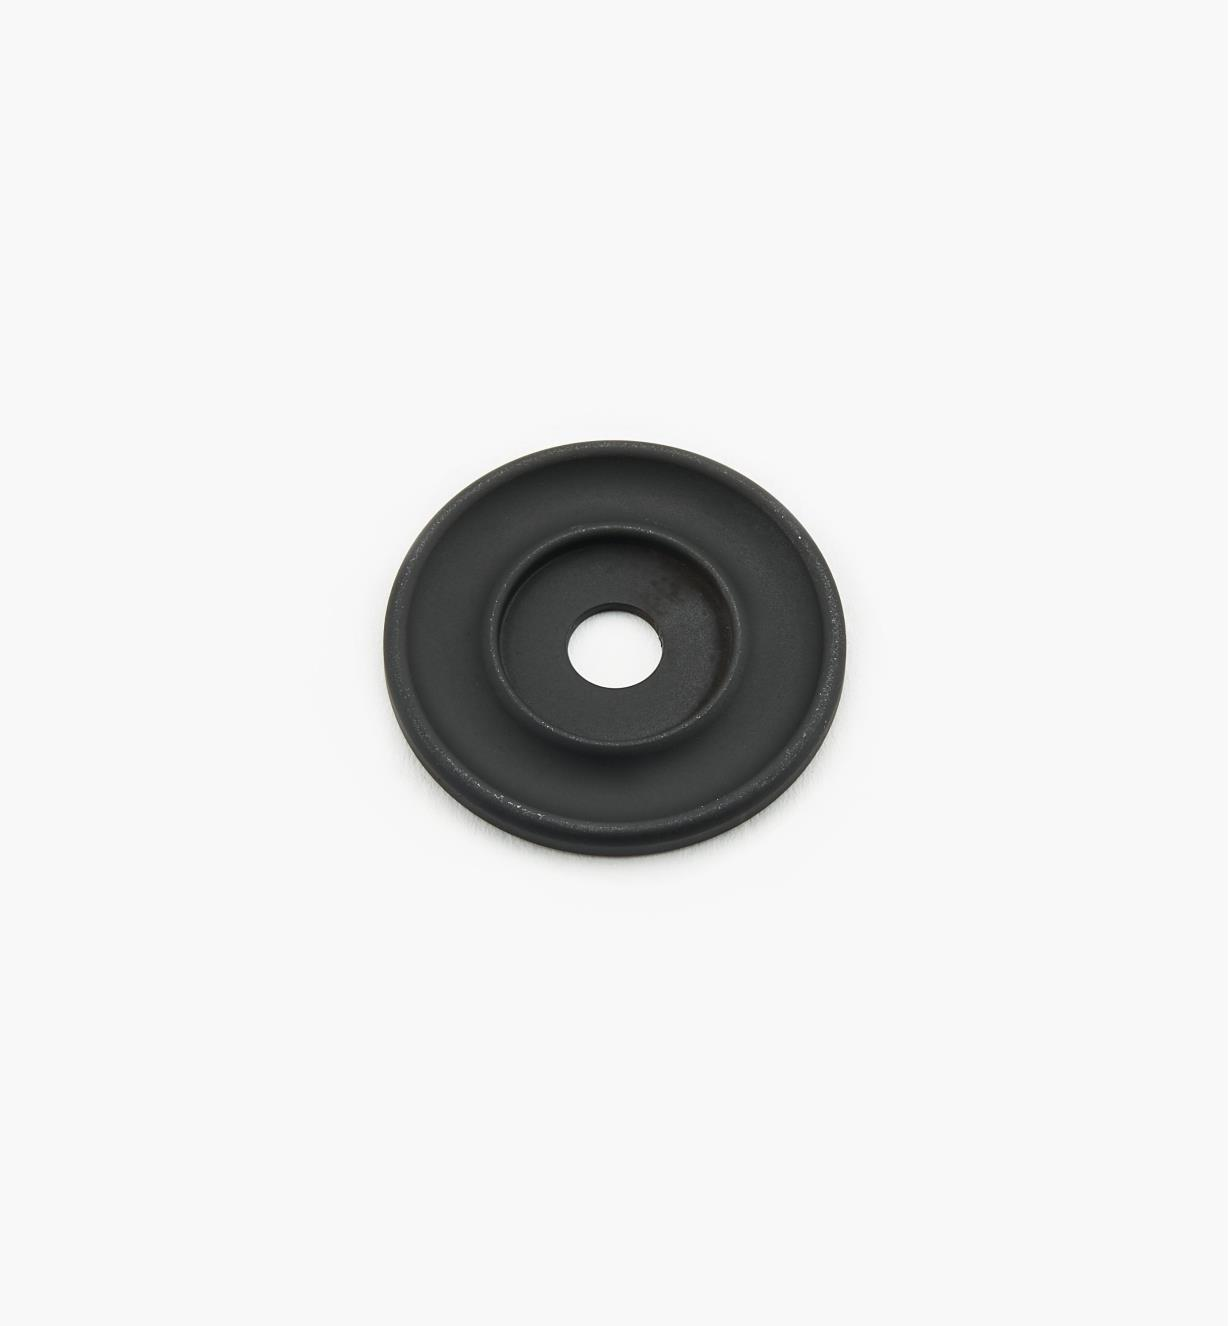 "02W3250 - Oil-Rubbed Bronze Suite - 1 1/4"" Knob Escutcheons"